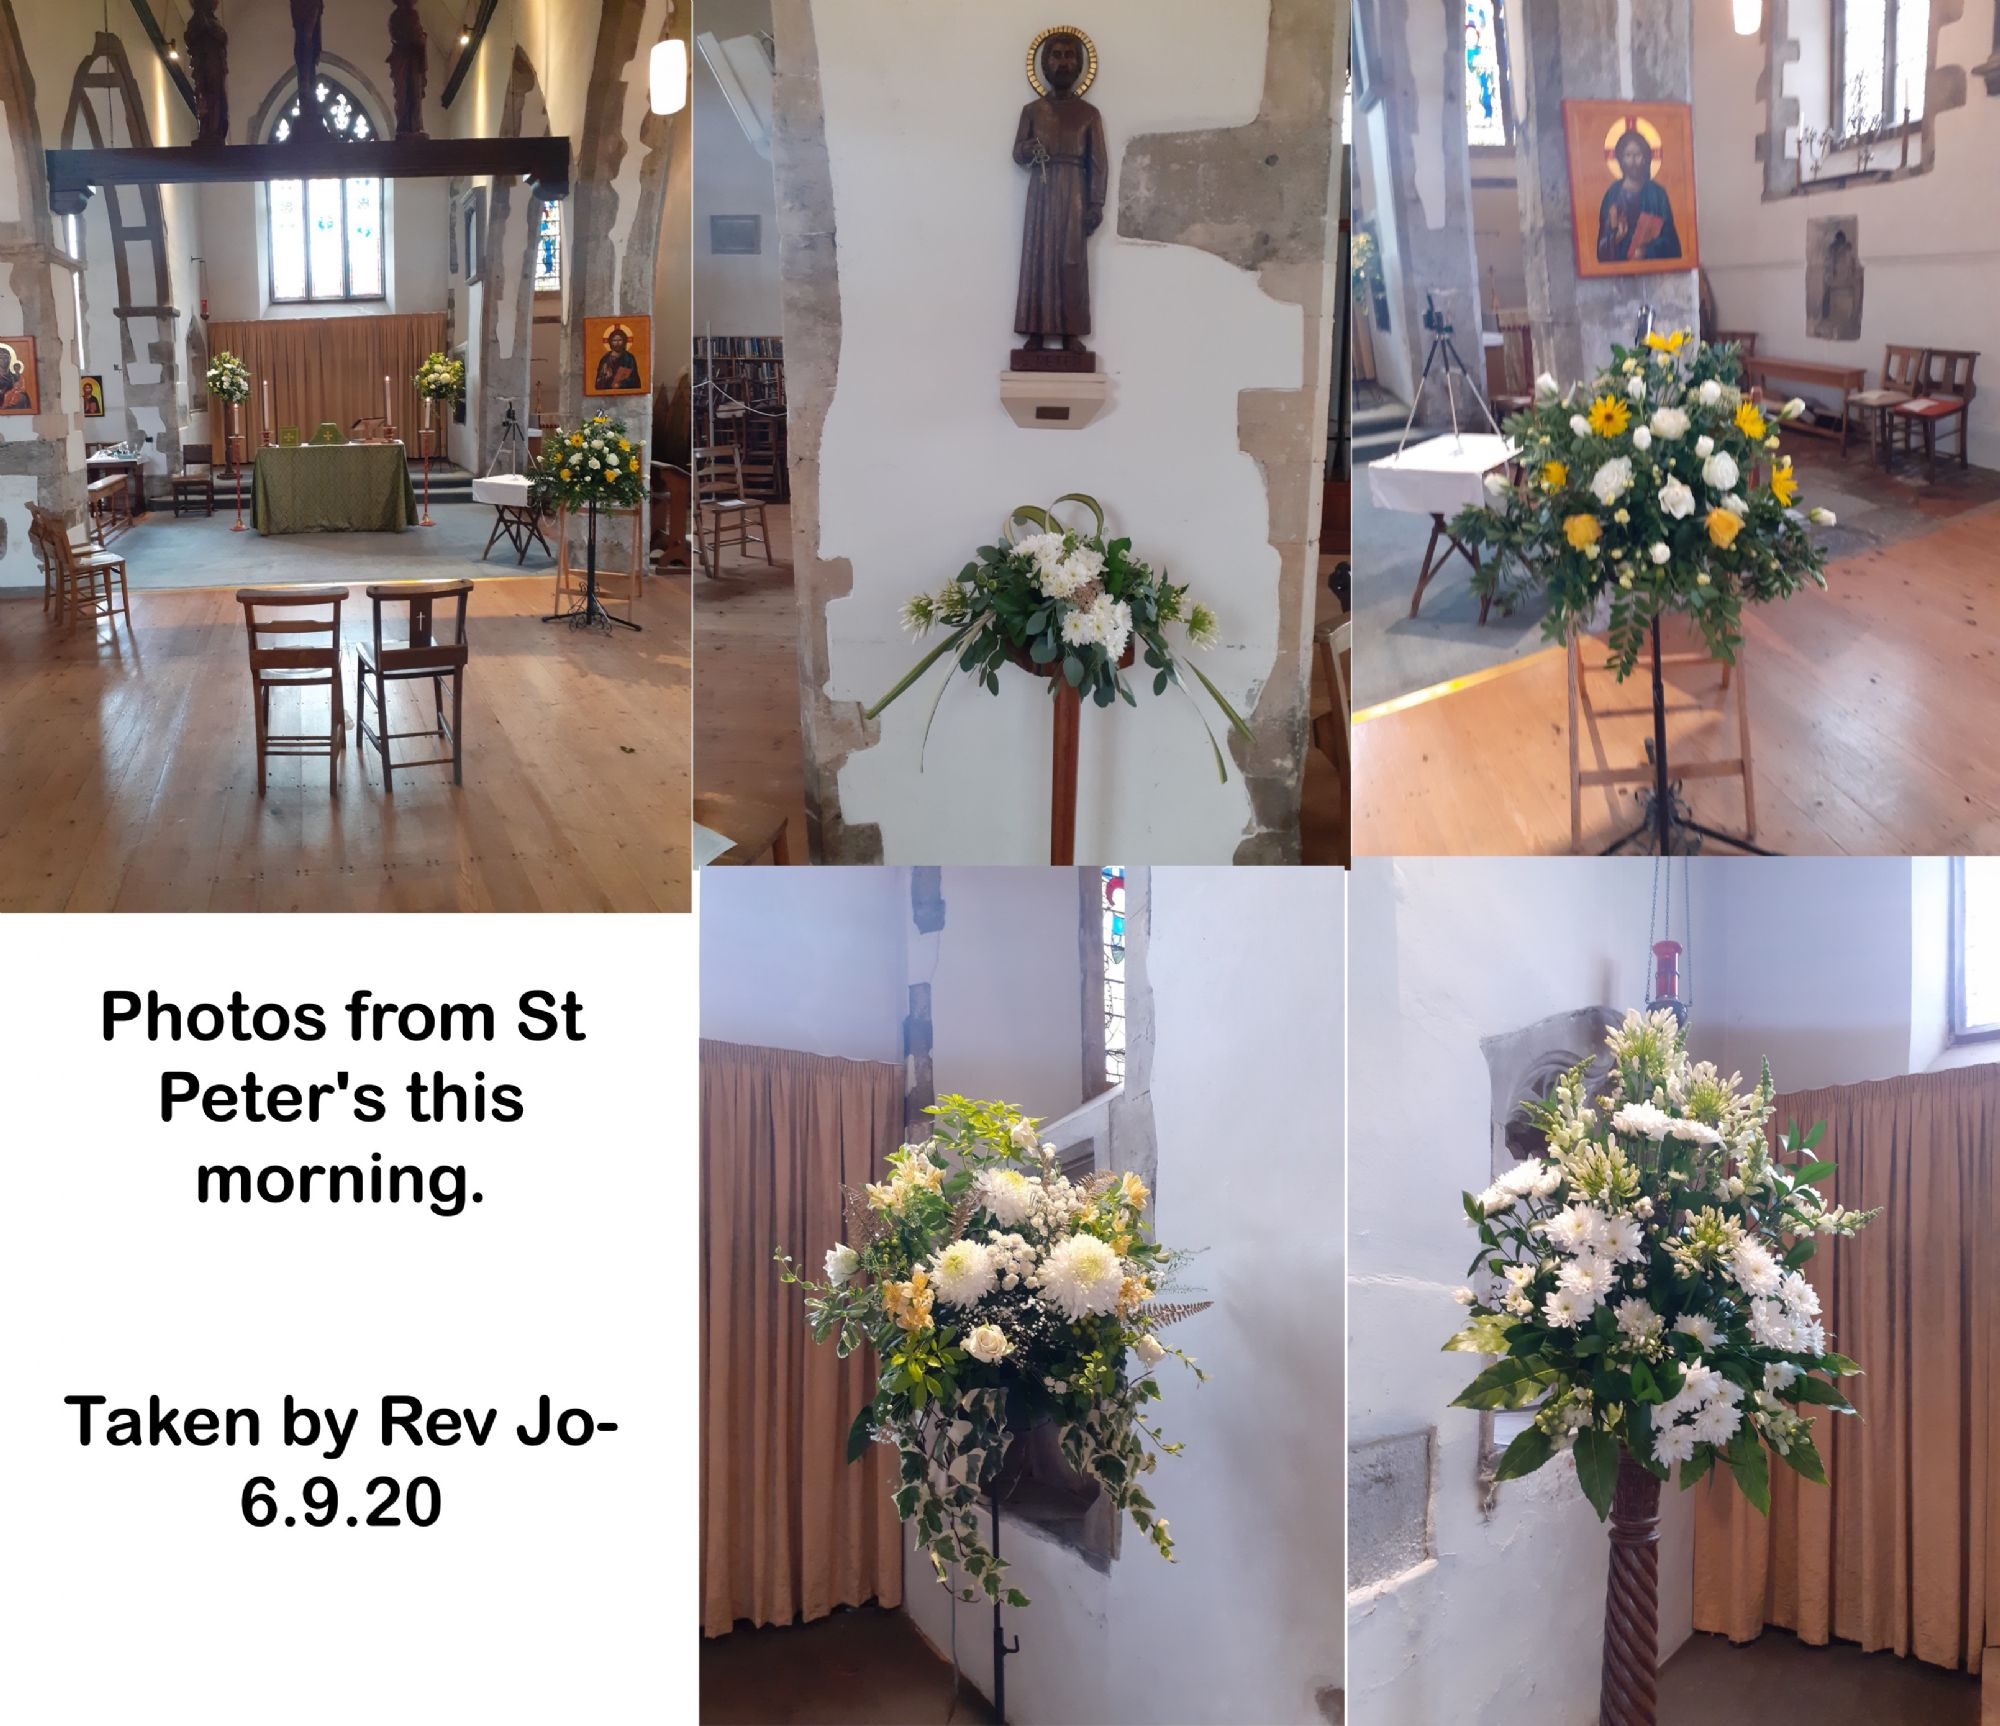 Photos from St Peter's this morning.